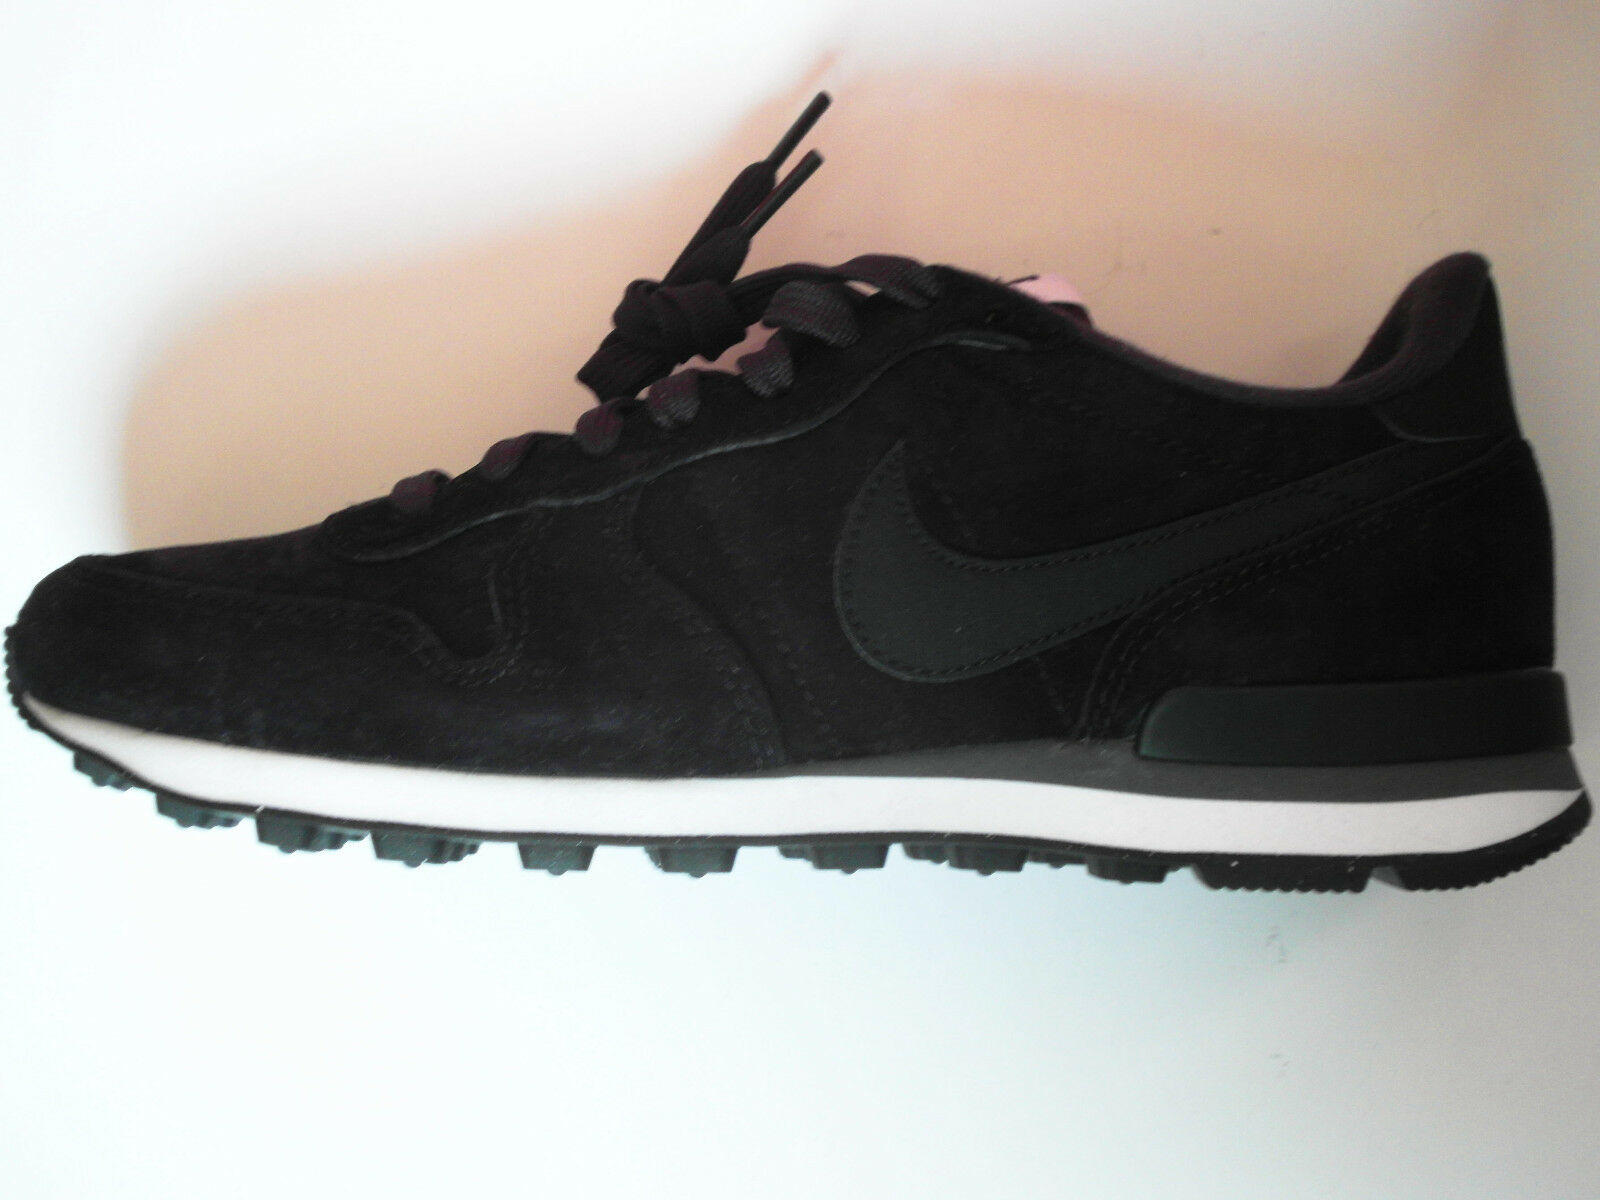 Nike Internationalist Leather Schuhe Größe EUR 41 UK UK UK 7, US 8, 26cm, Schwarz 348ee6